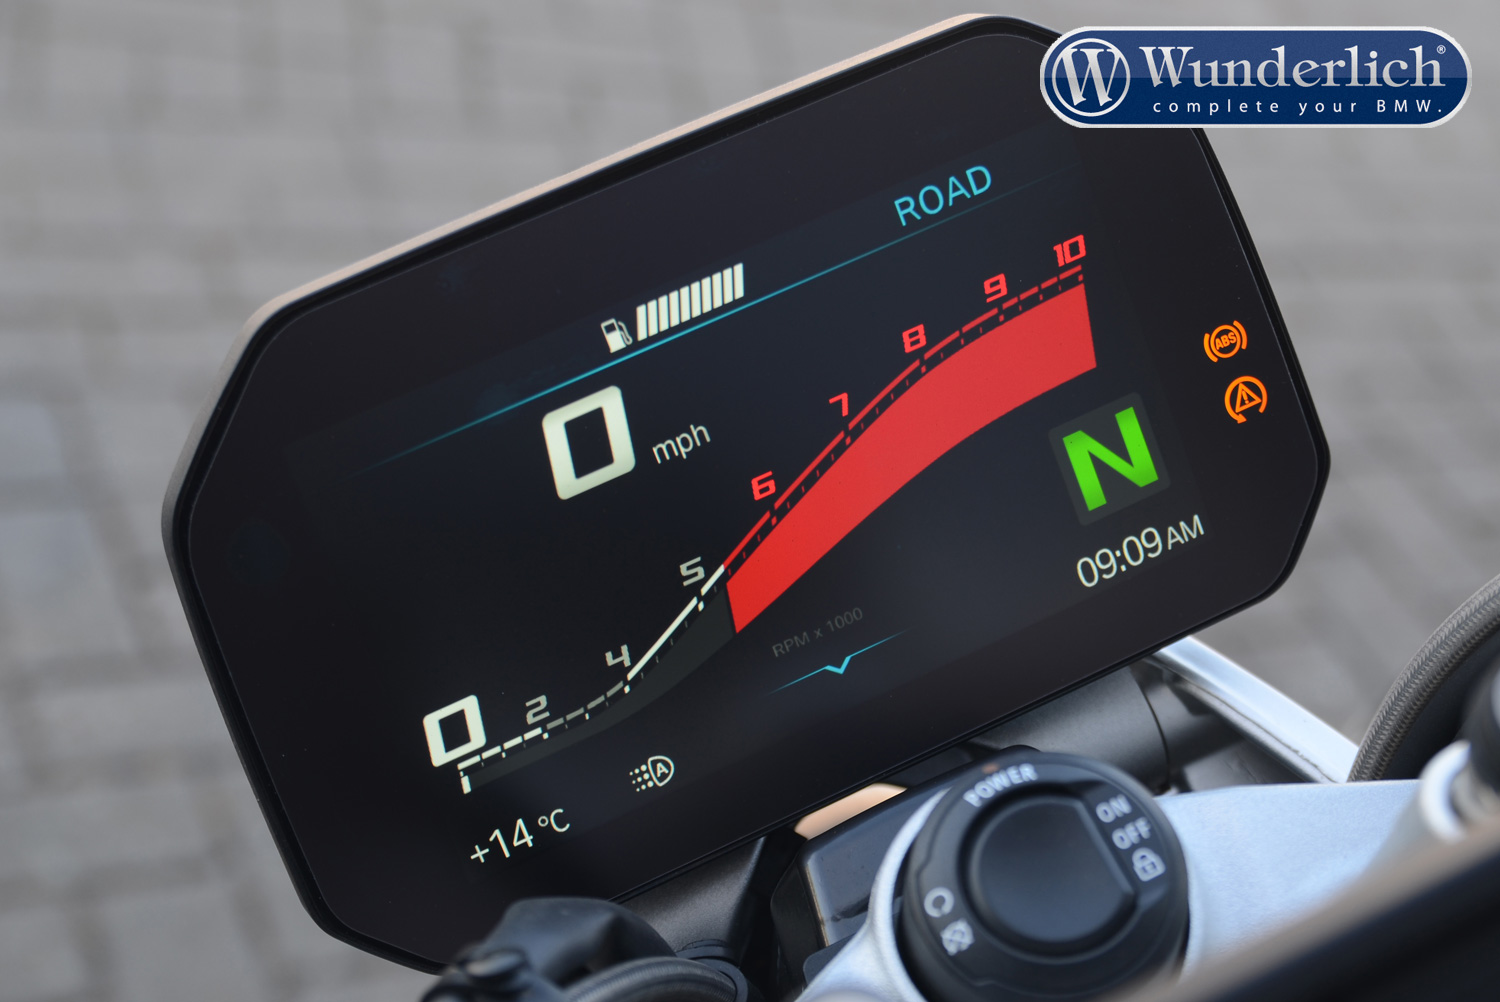 Speedo-Angels BMW R1200GS 6 Instrument Cluster Screen Protector 5 TFT Dashboard 1 x Ultra-Clear /& 1 x Anti-Glare Screen Protectors